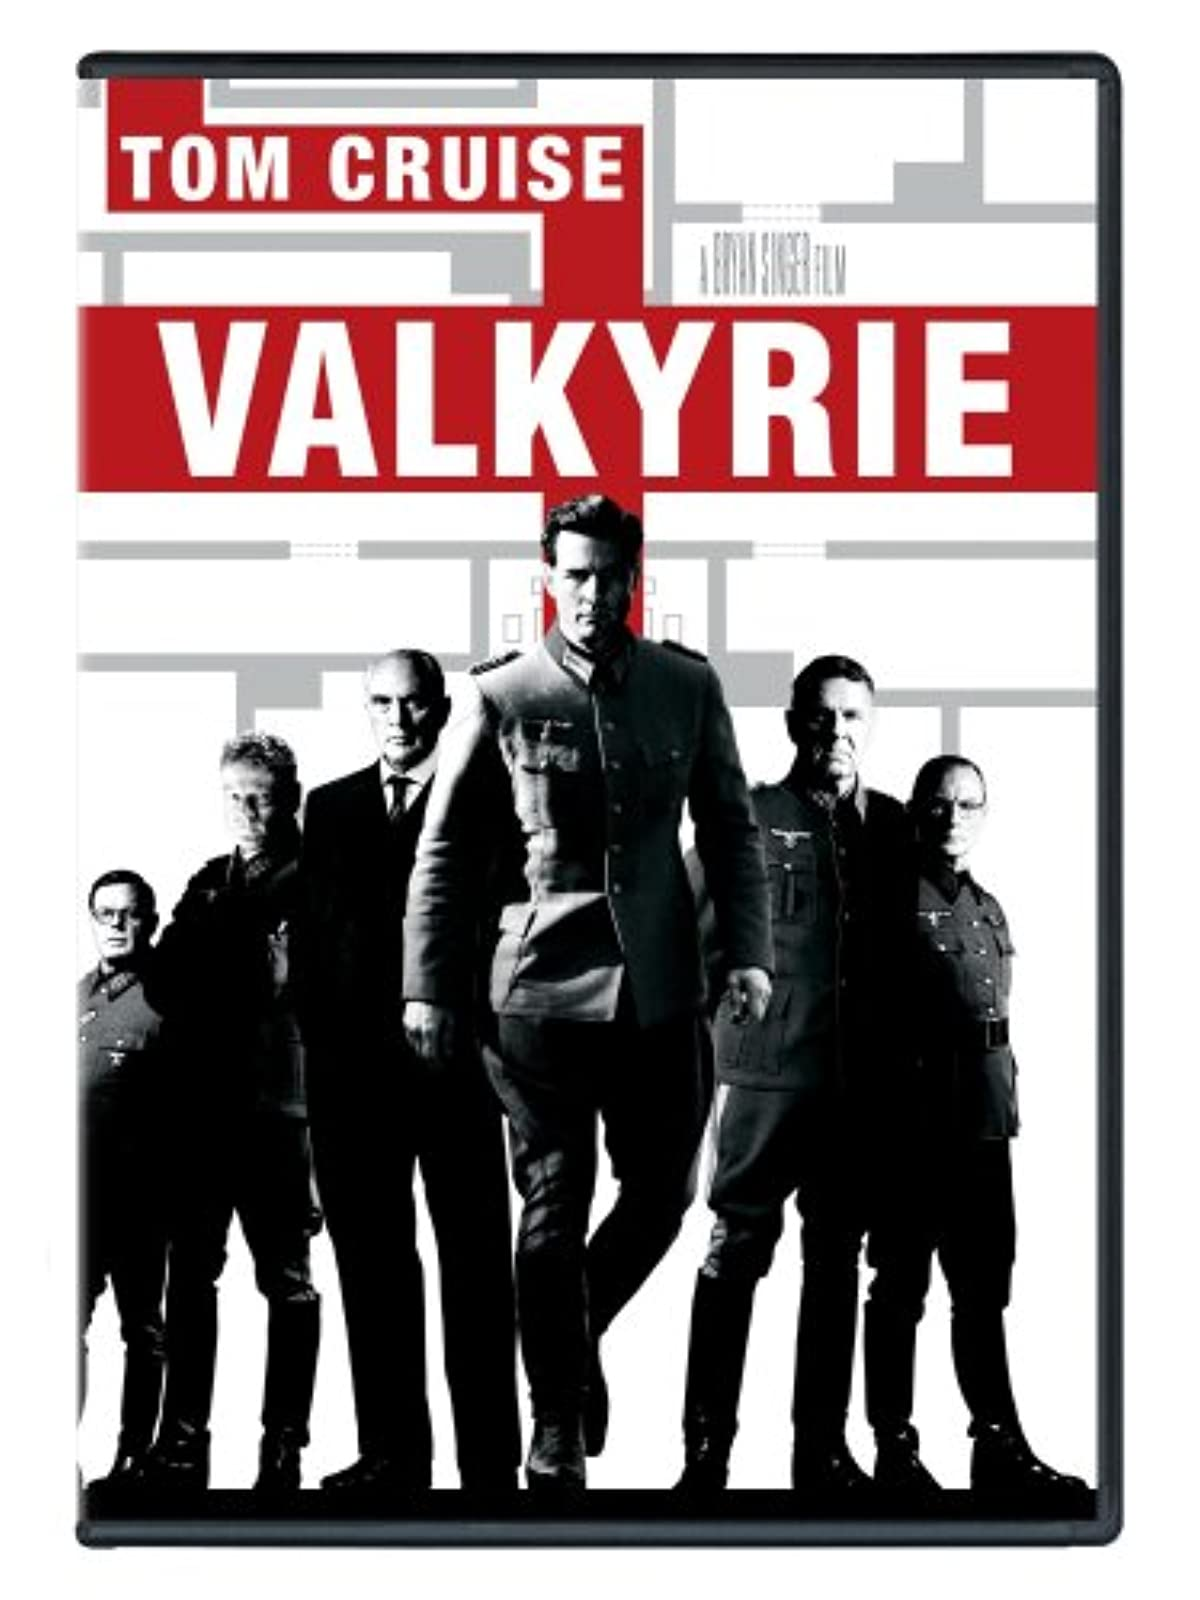 Valkyrie On DVD With Tom Cruise